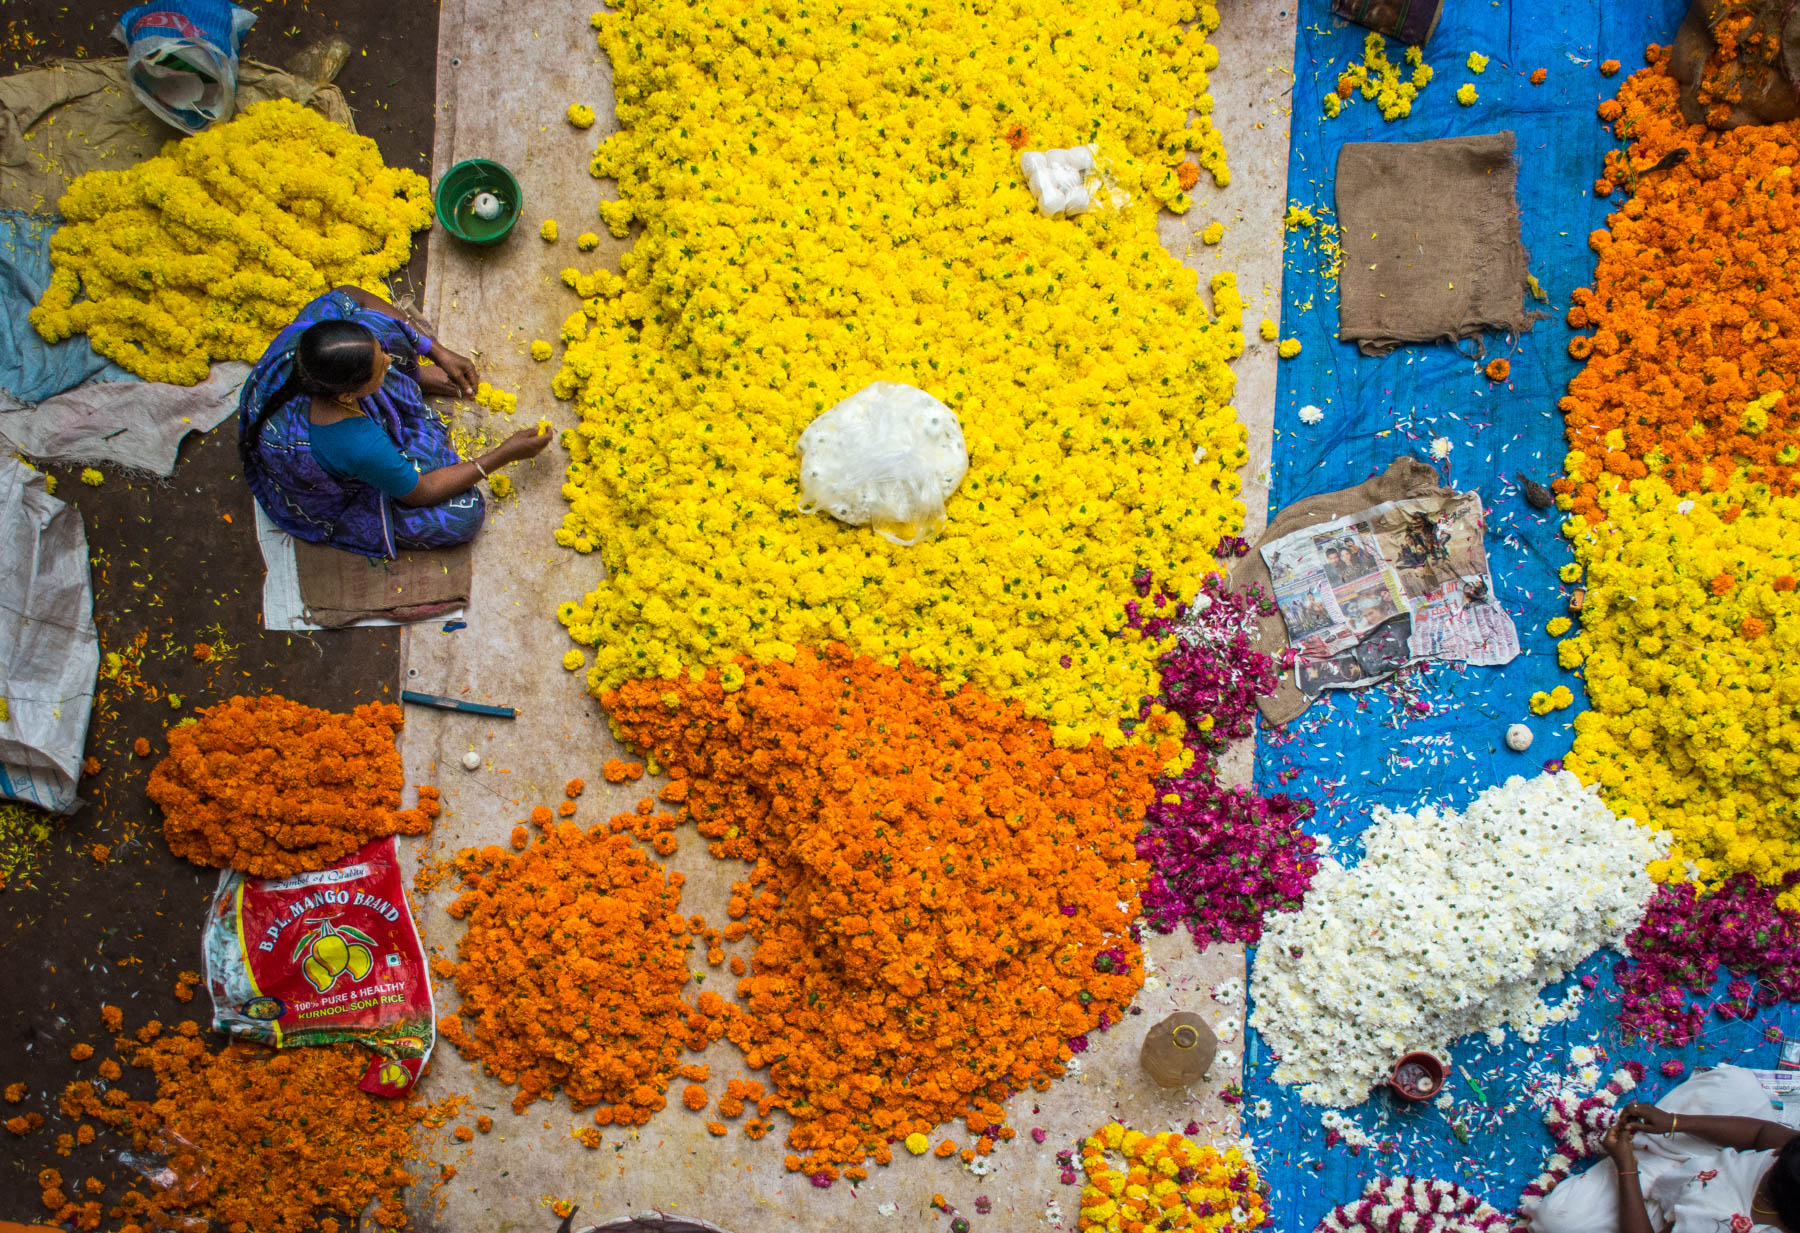 Why dual pricing is unfair - A flower stringer in Bangalore, India - Lost With Purpose